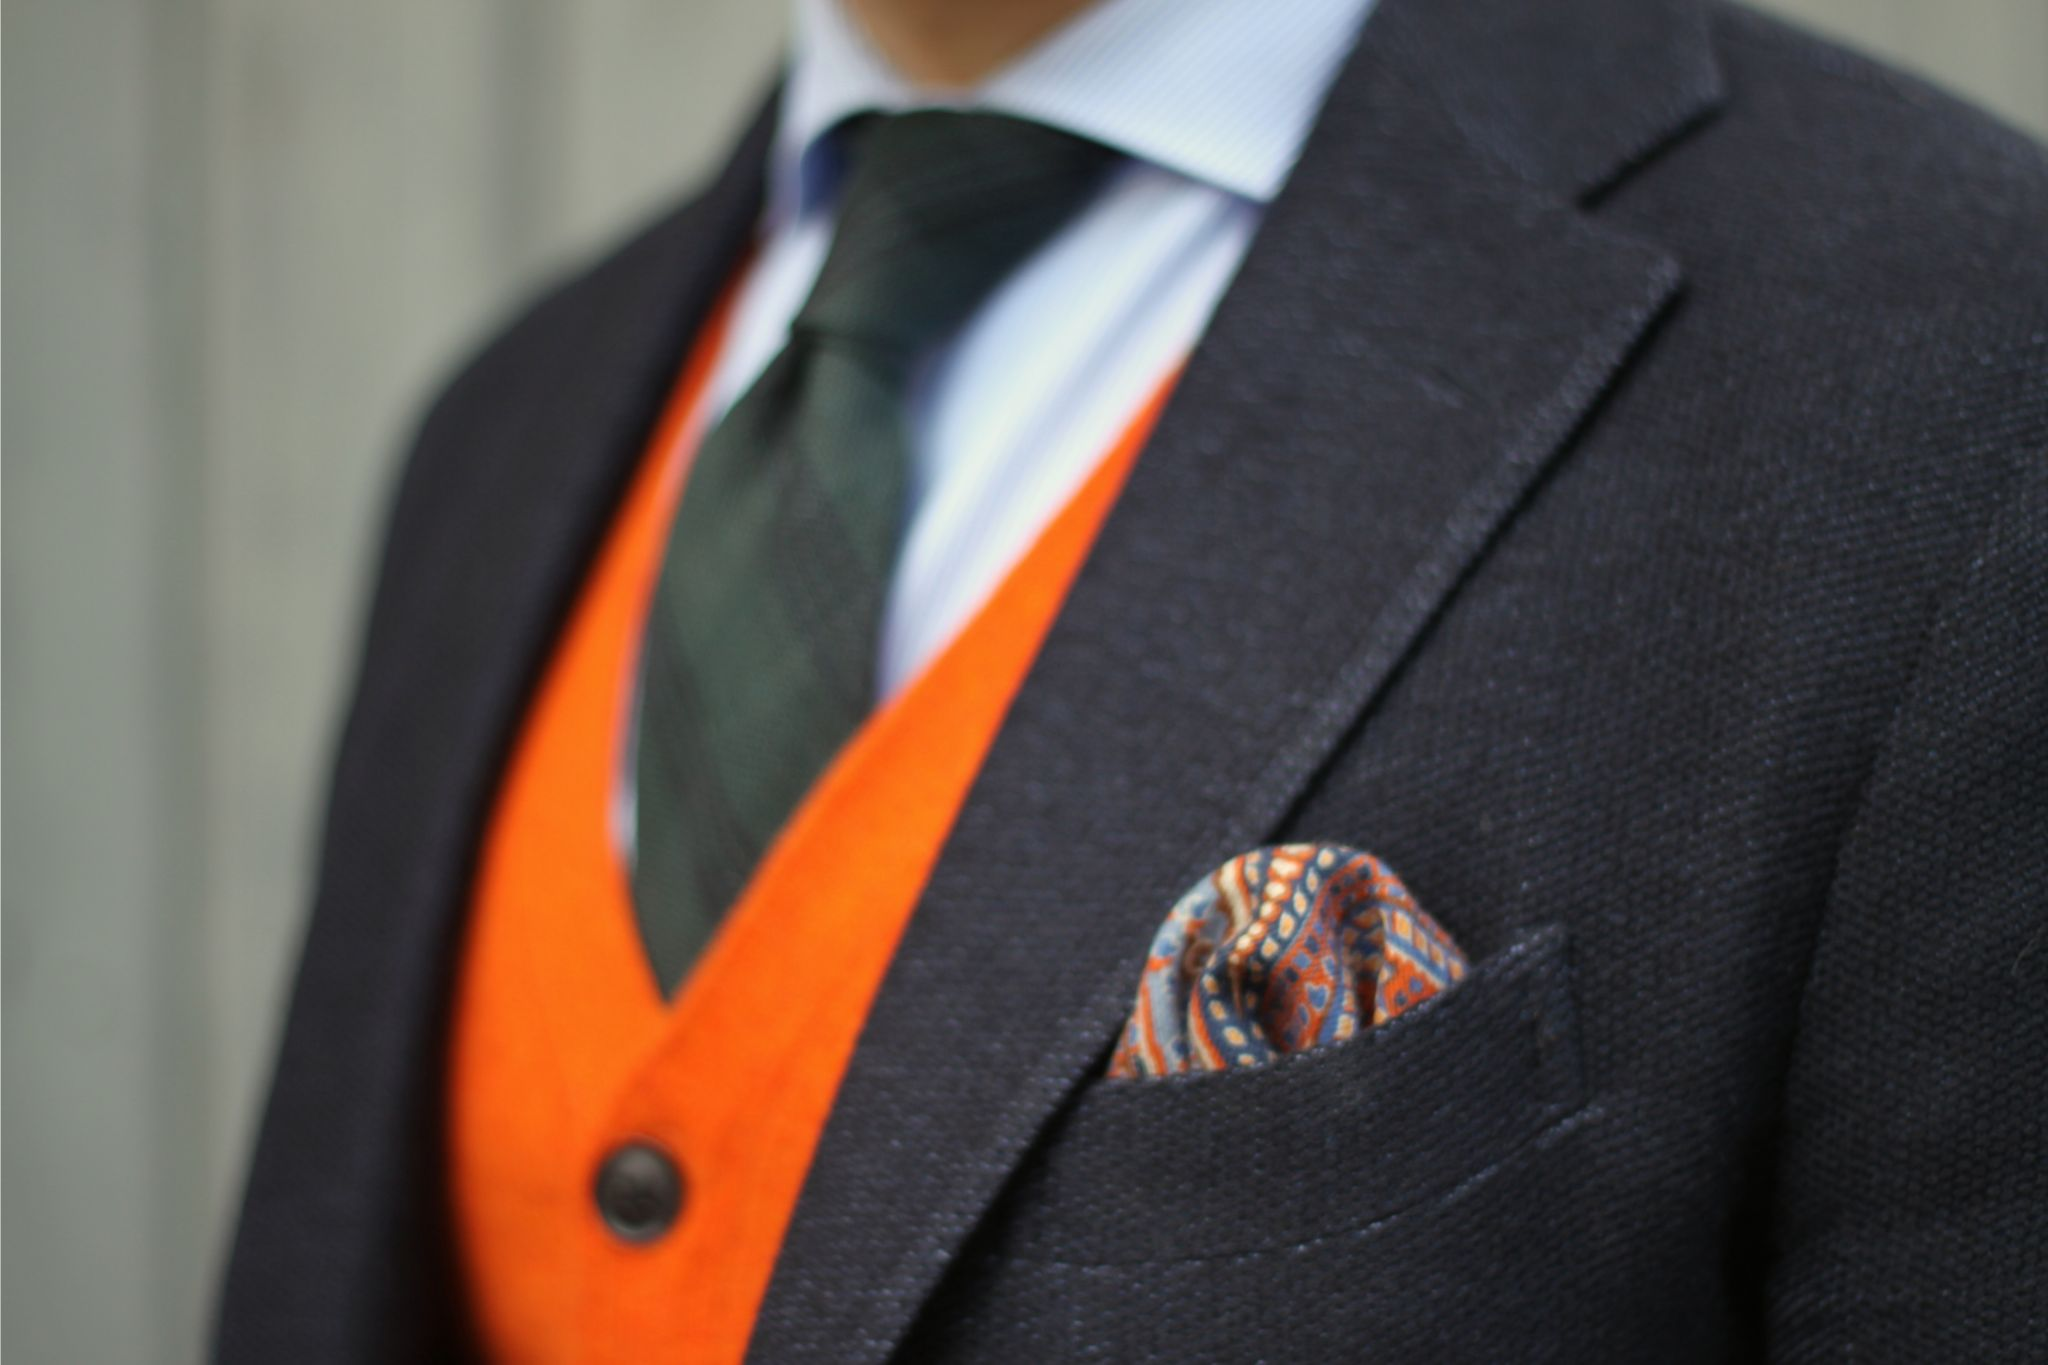 Cardigan with sport coat - pocket square details